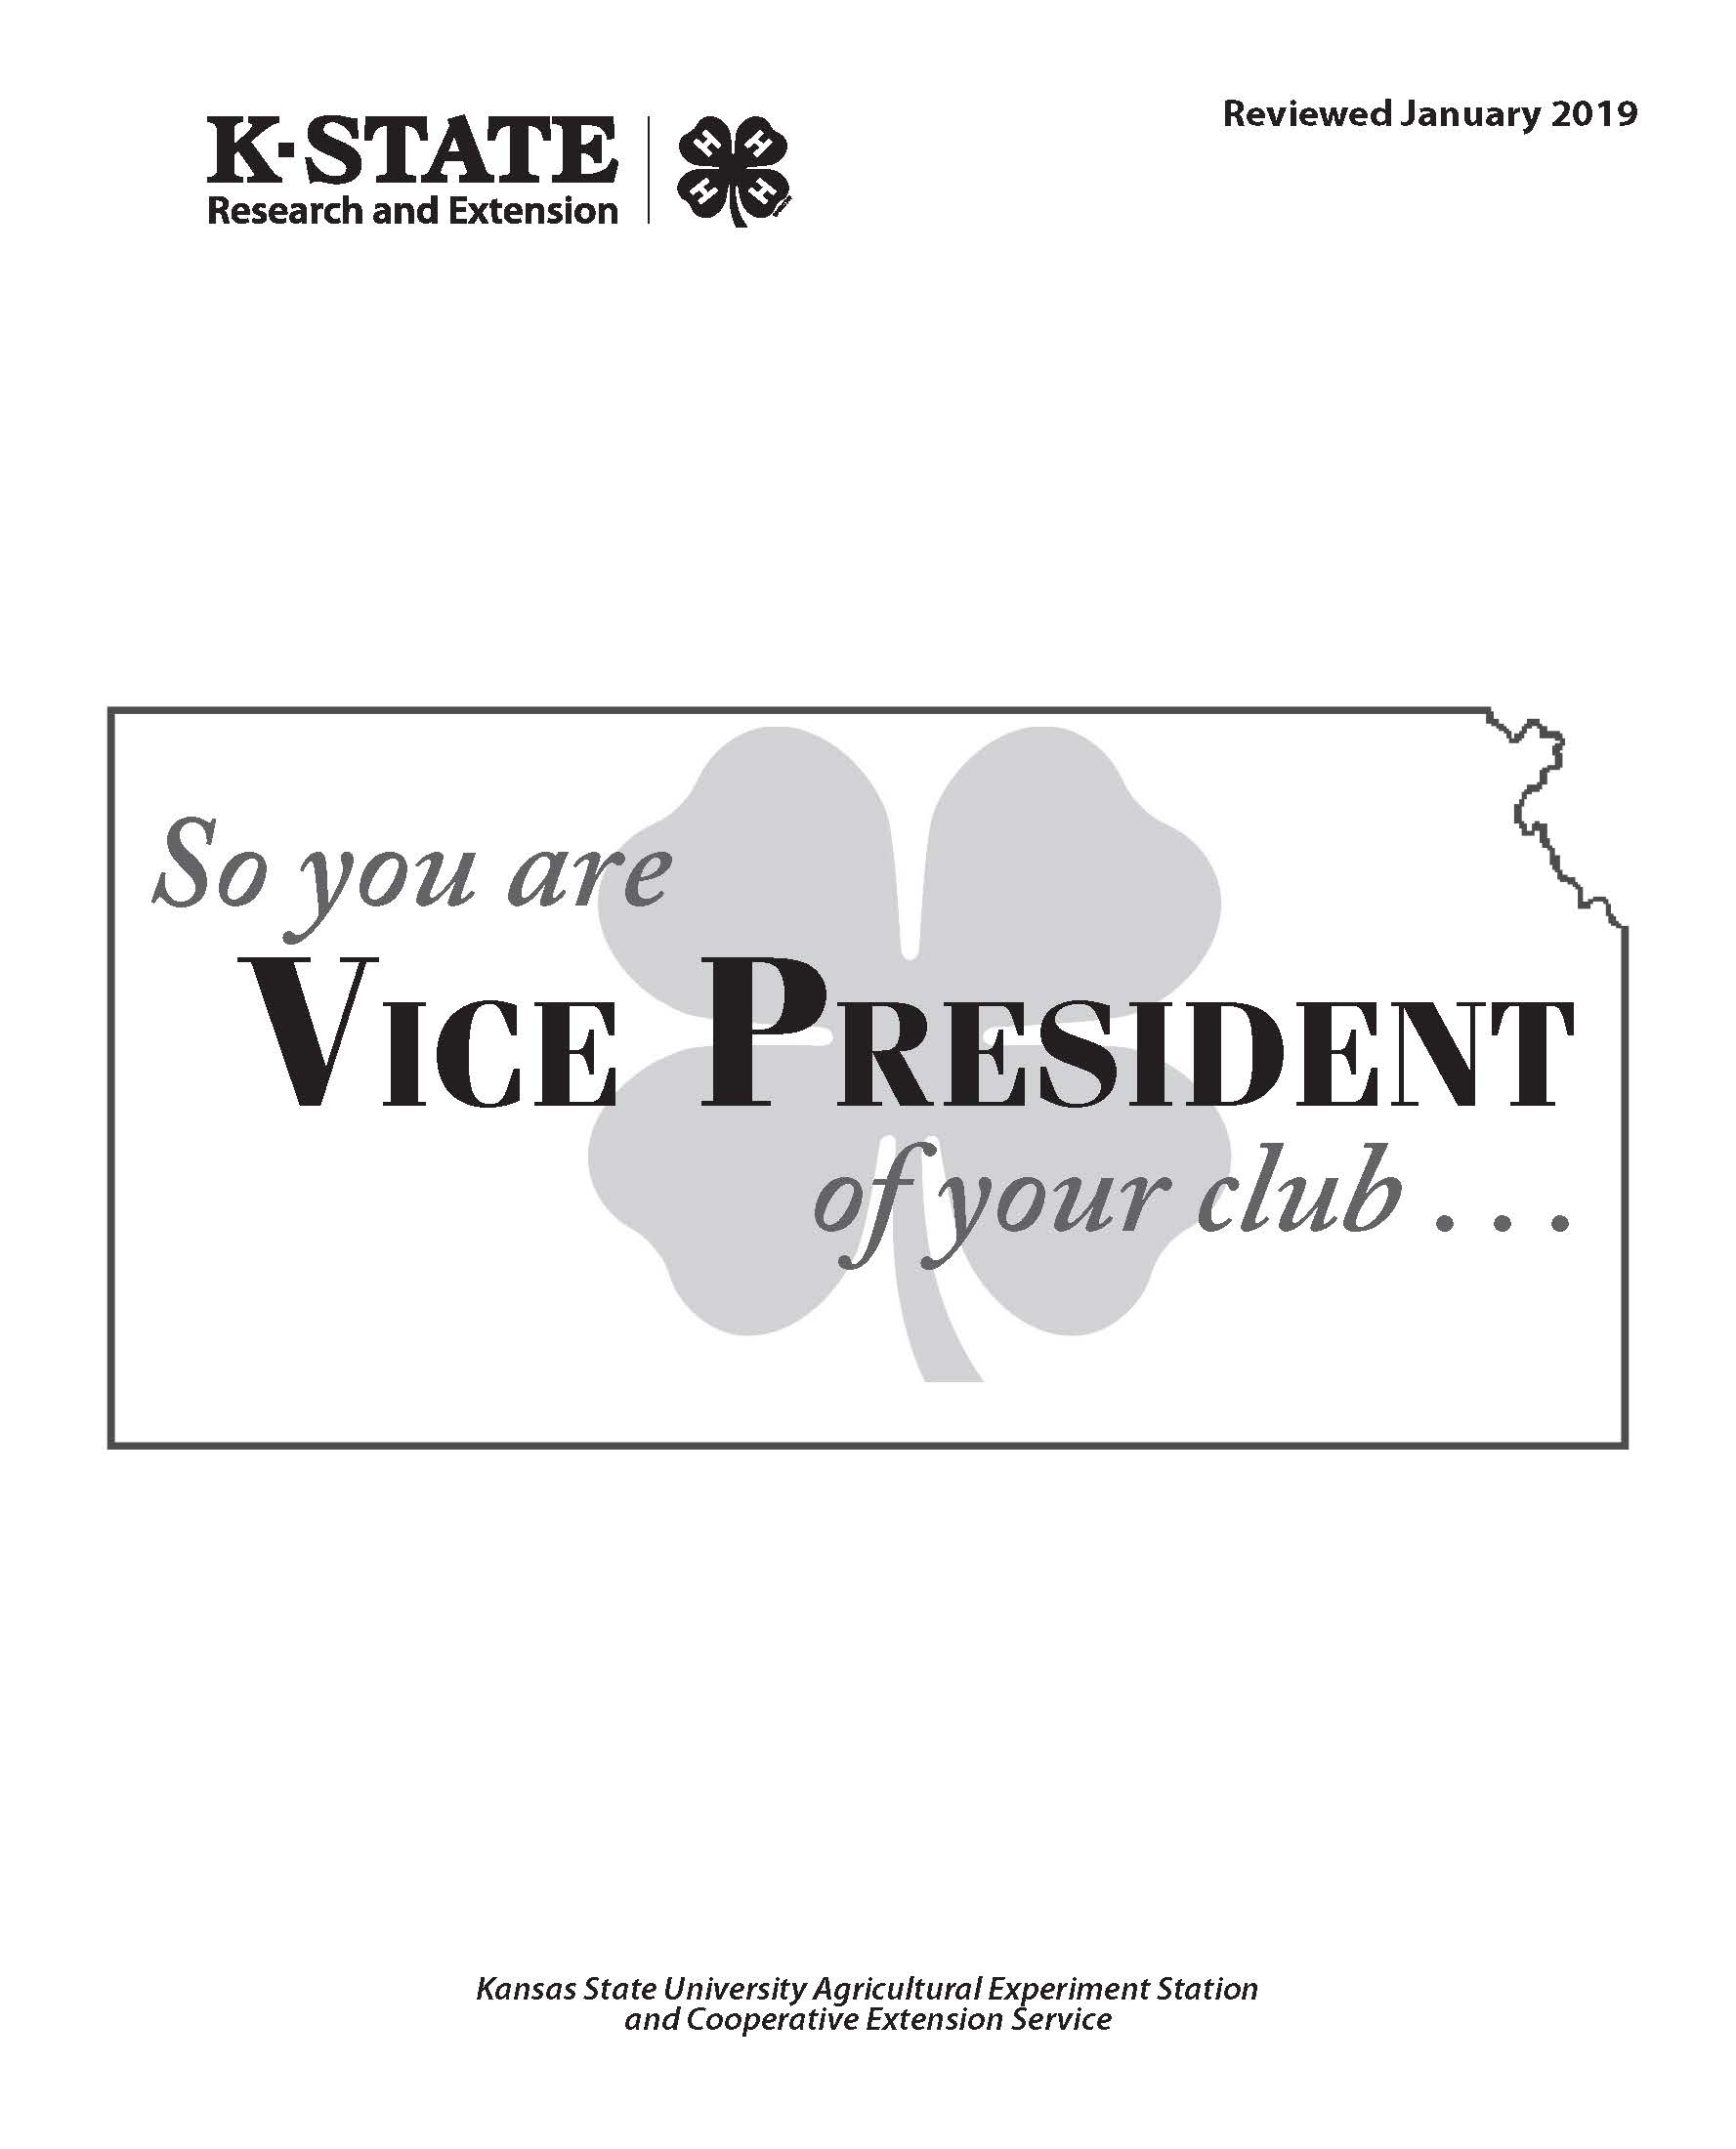 So you are Vice President of your club